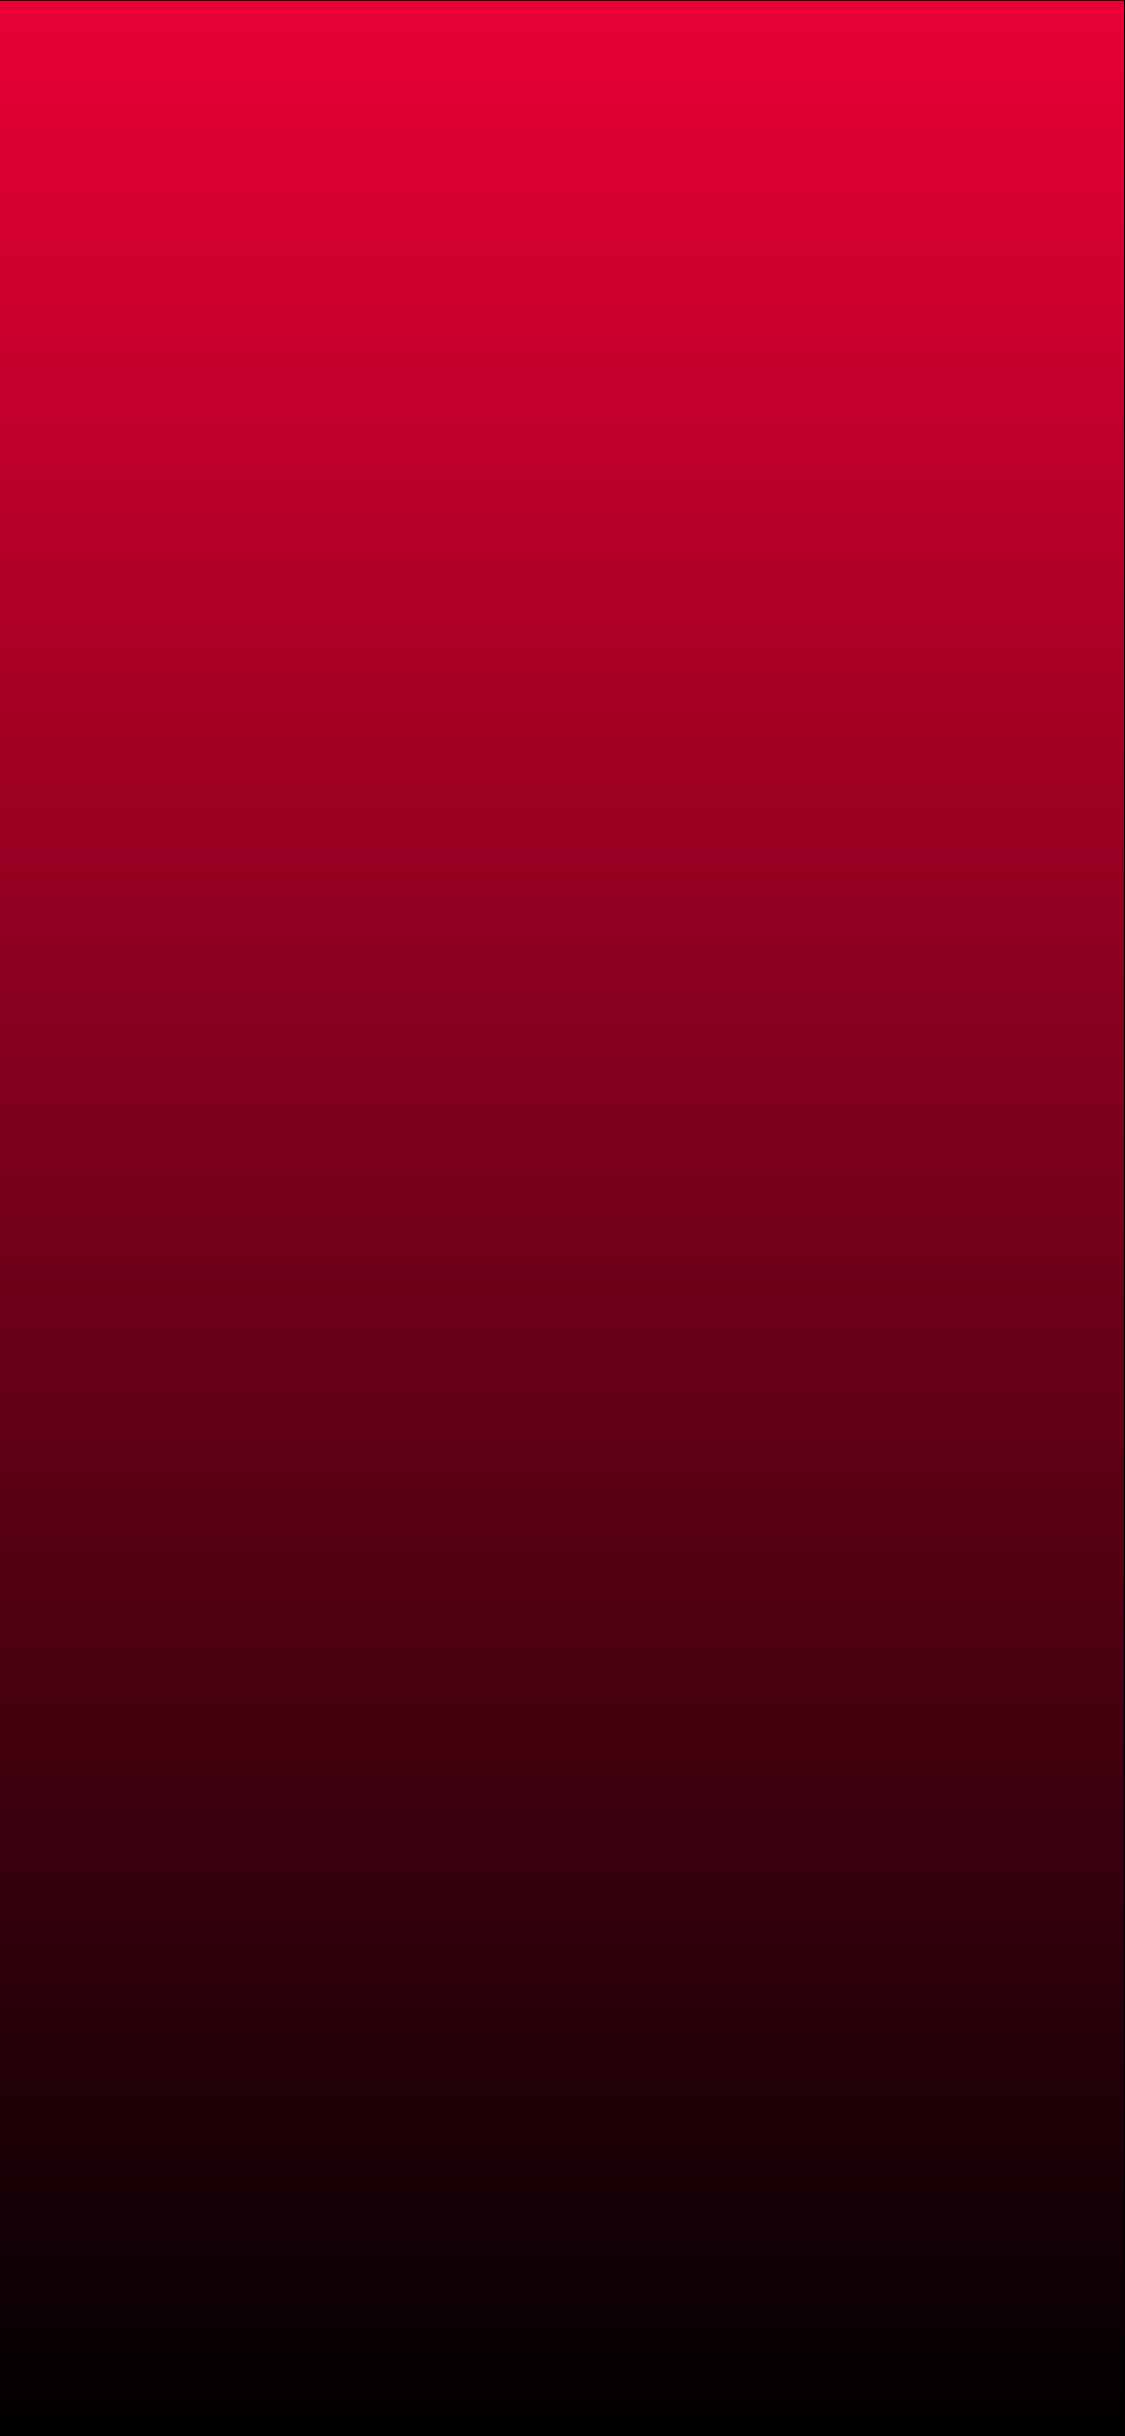 Top 50 Gradient Backgrounds For Apple Phones or any other phone